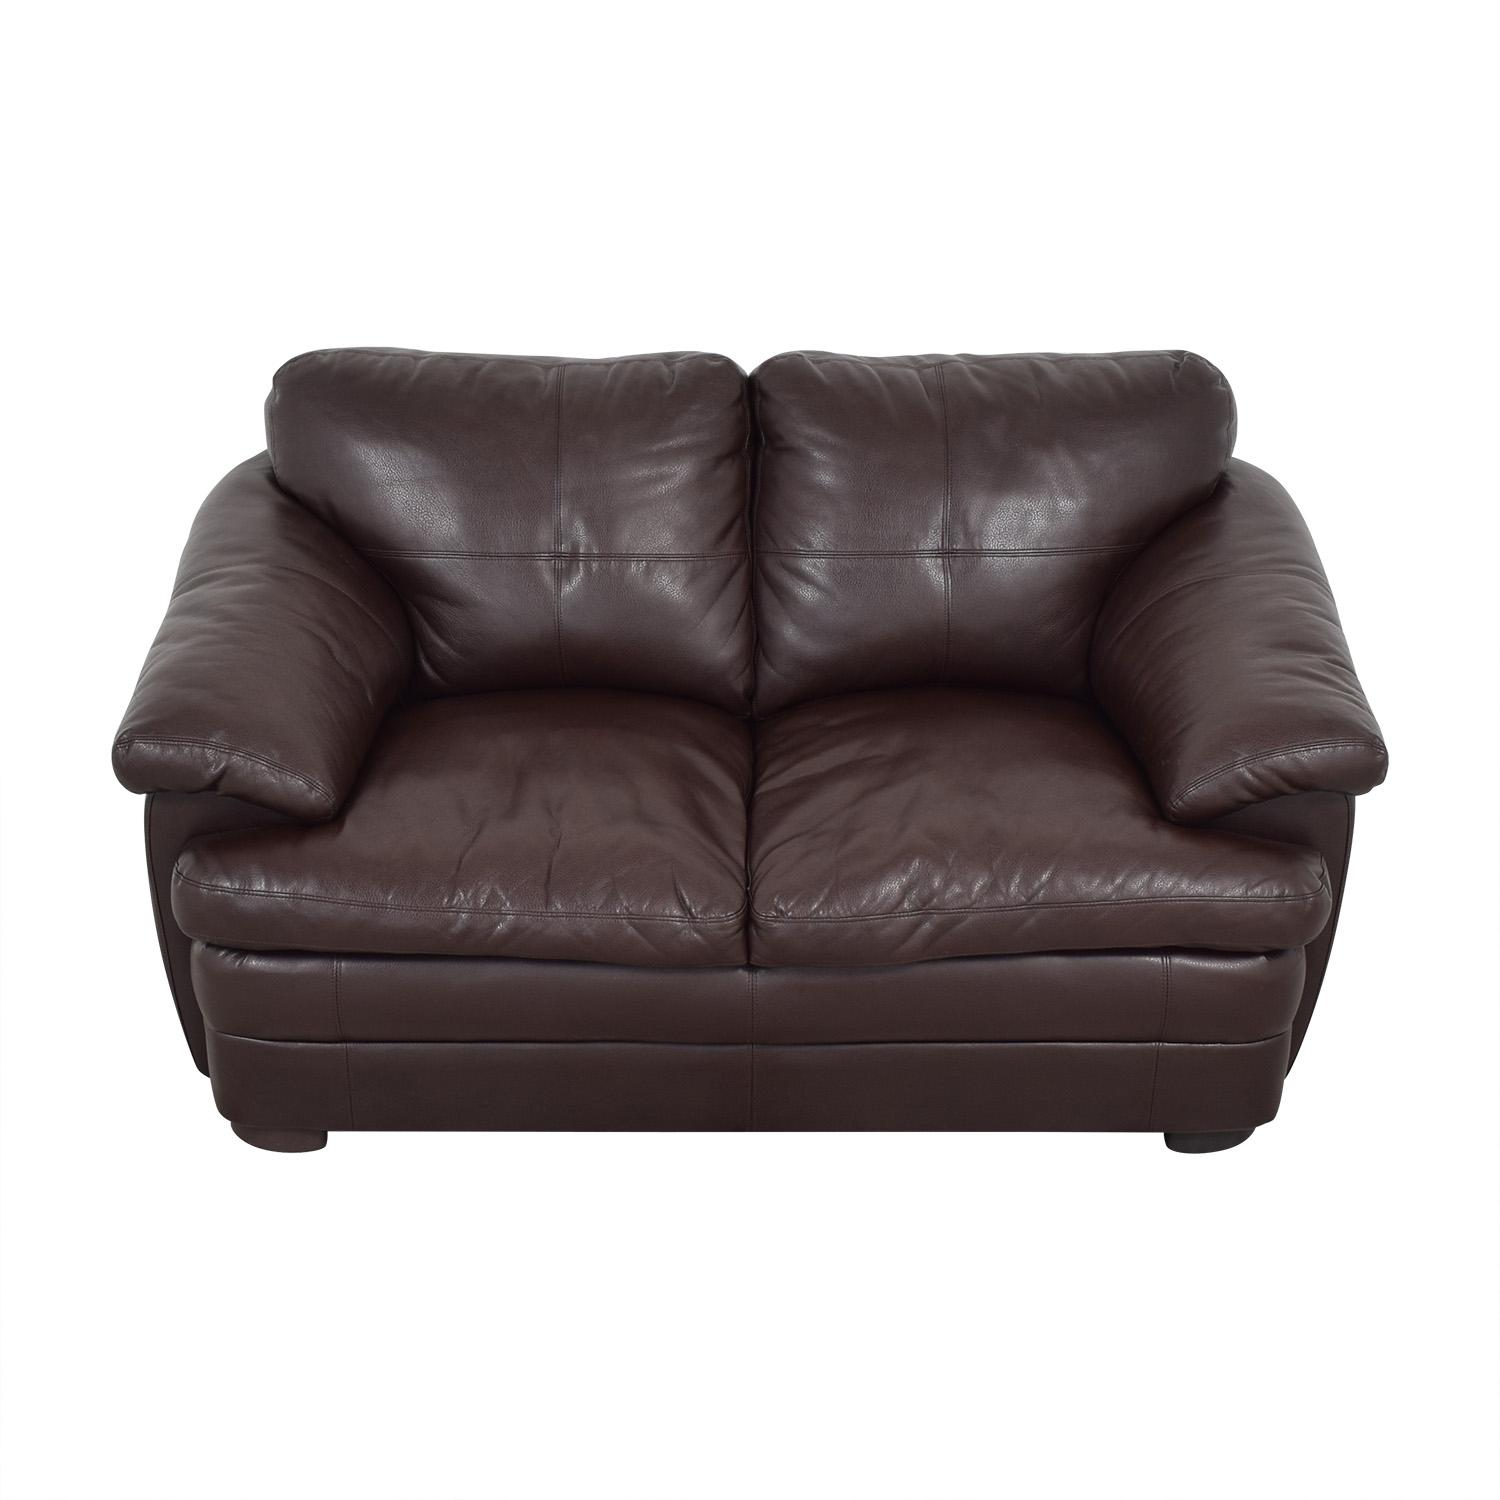 Two Cushion Loveseat for sale